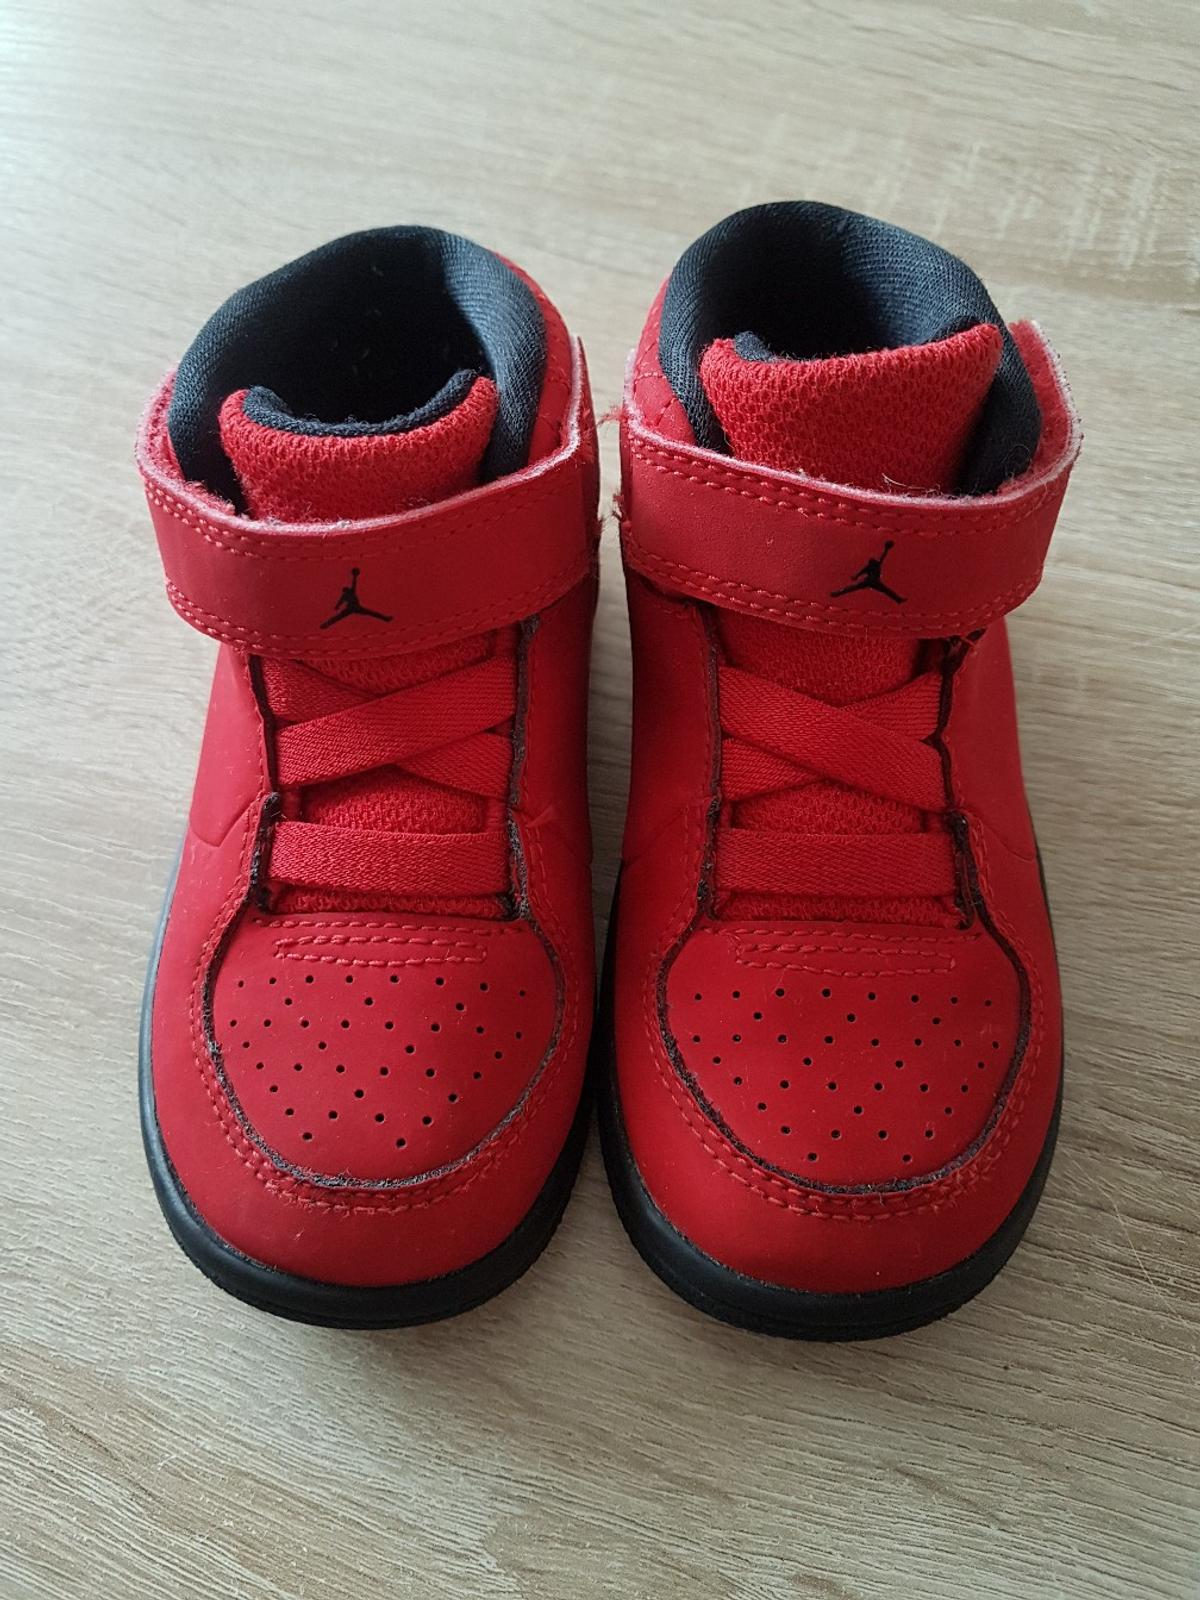 d5d4f0343c2c62 Nike Air Jordan gr. 23.5 in rot in 64297 Darmstadt for €25.00 for ...